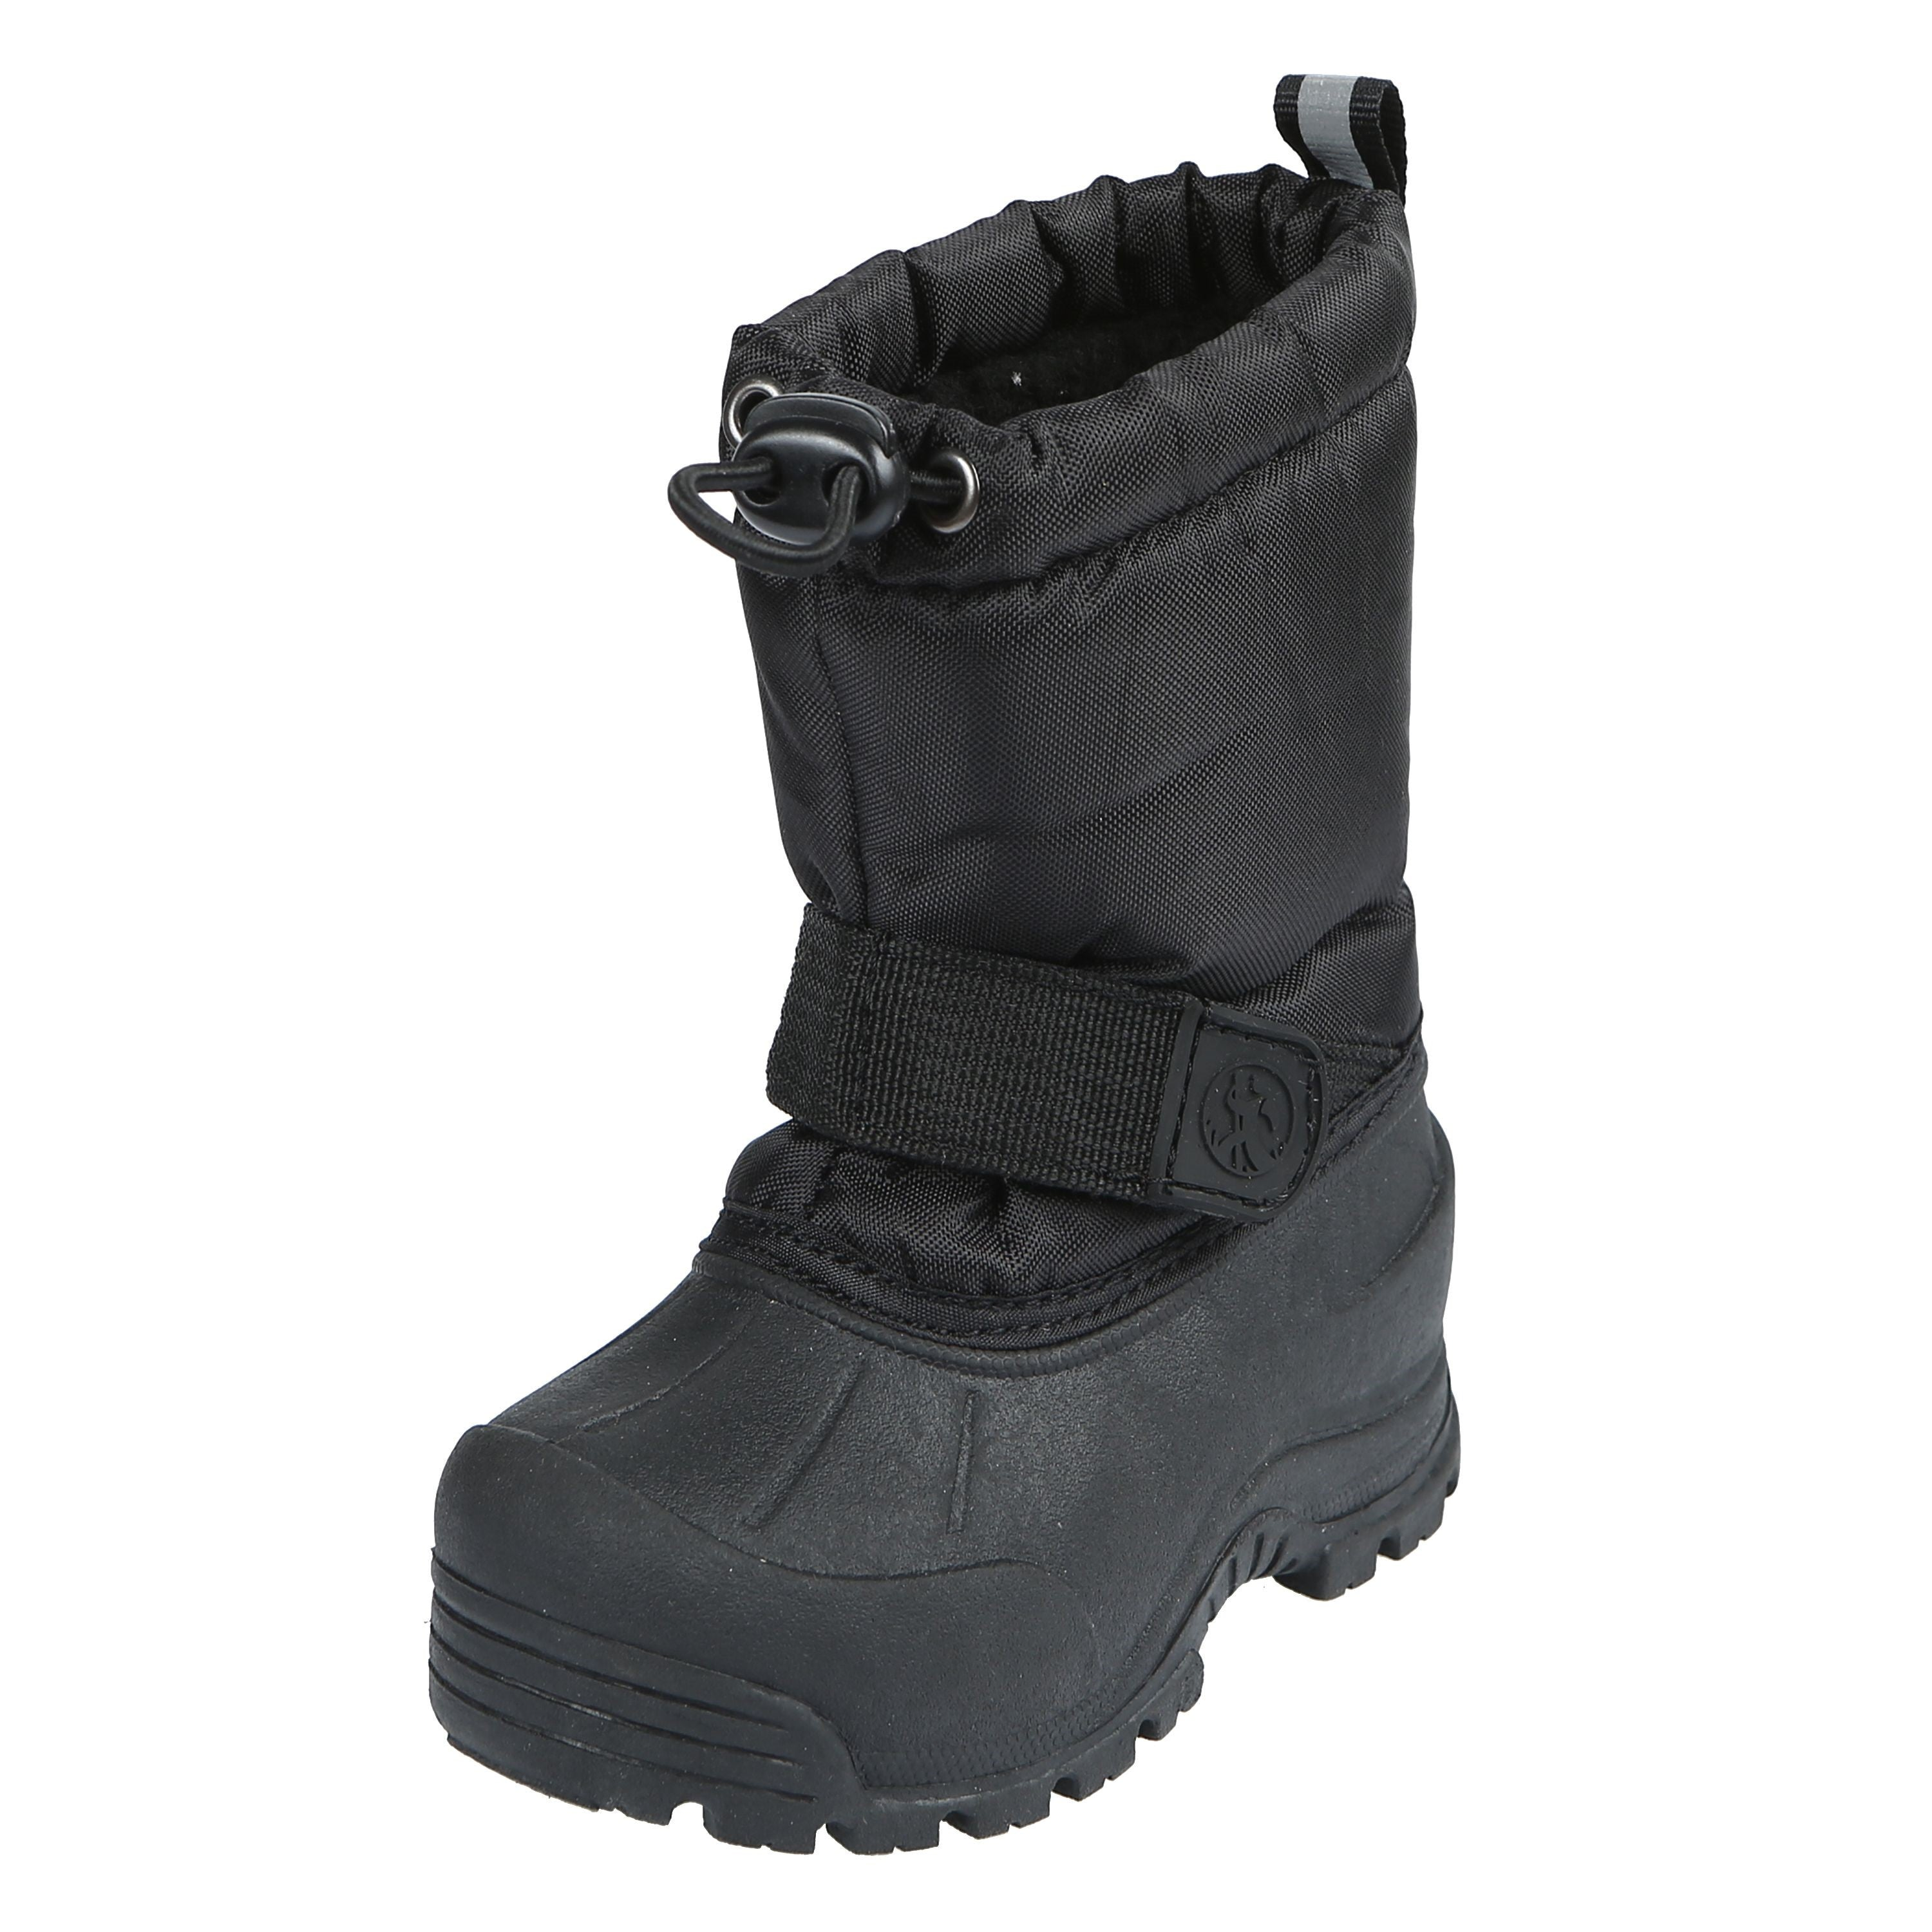 'Northside' Youth Frosty Insulated WP Snow Boot - Black